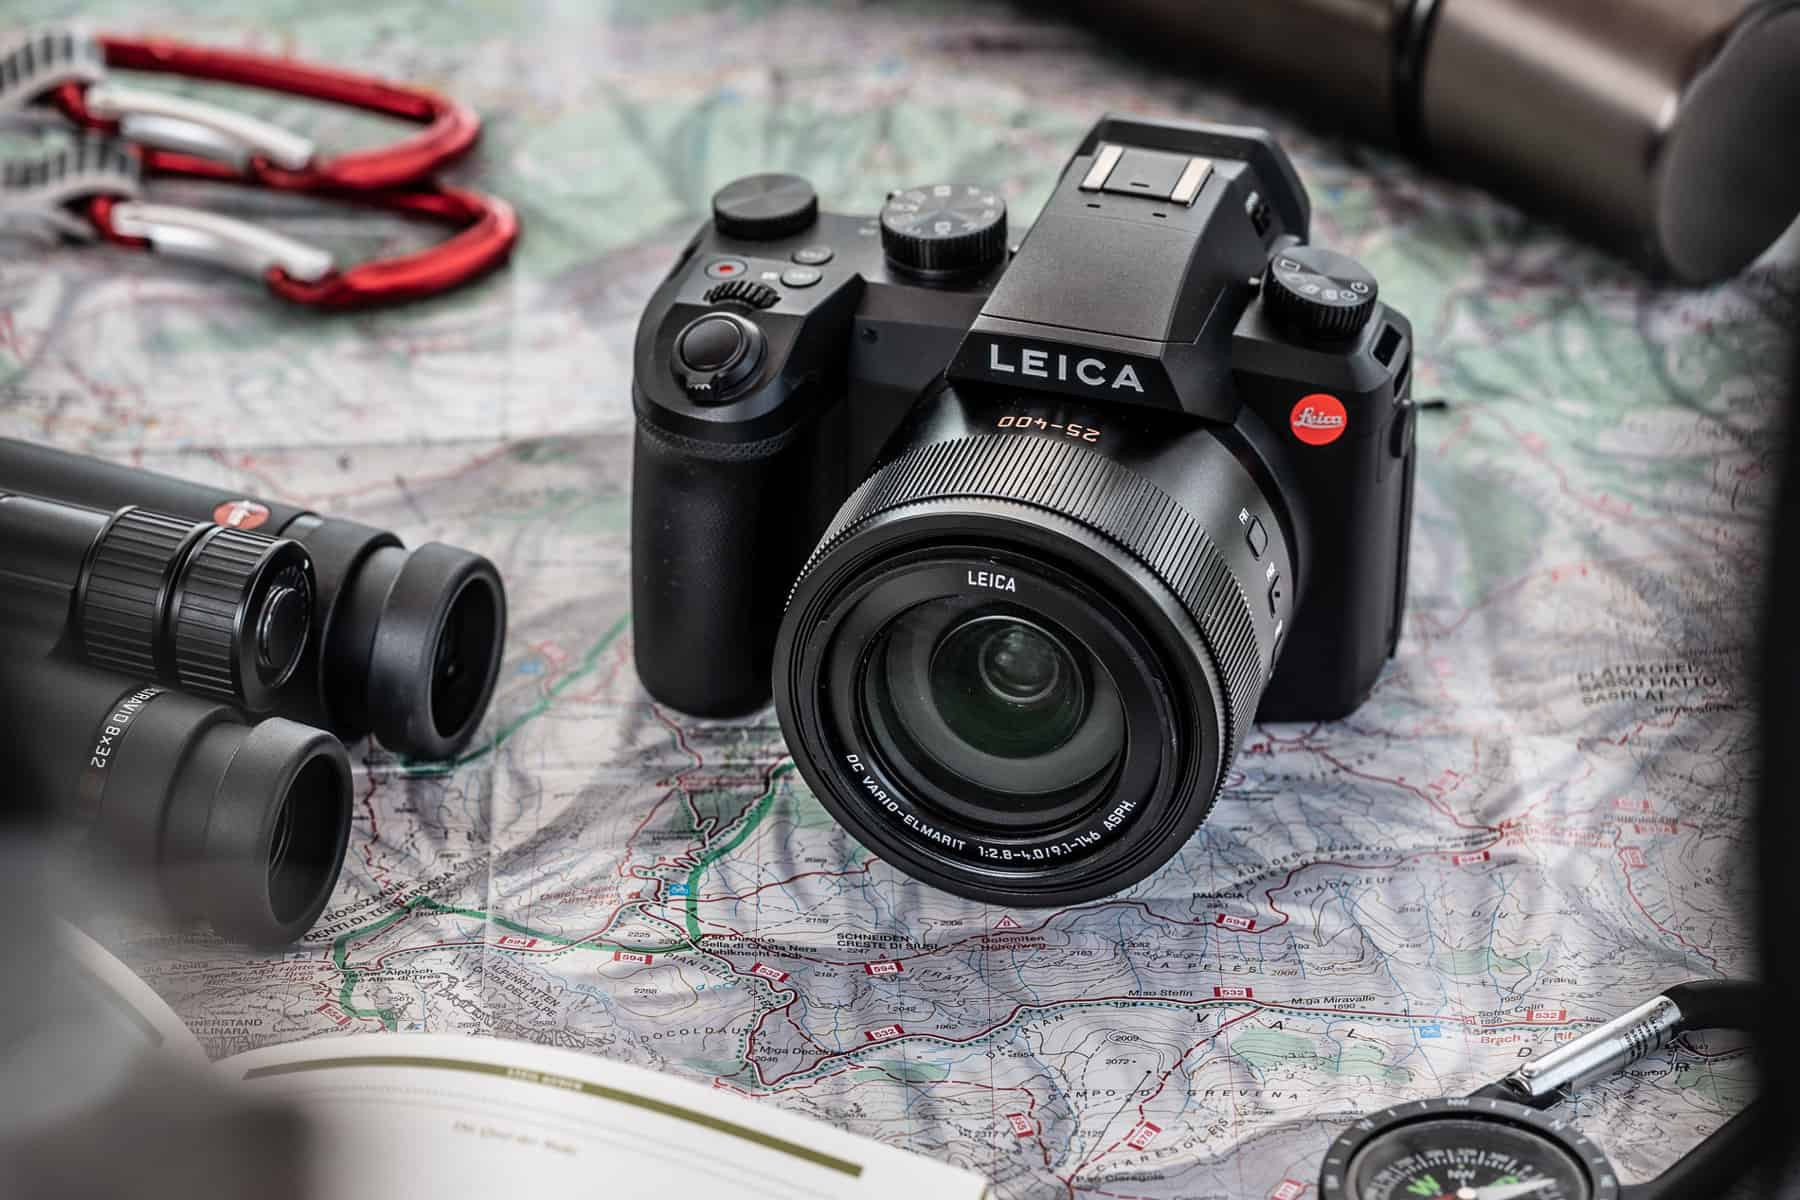 Leica V-Lux 5 camera officially launched in India for Rs 98,000